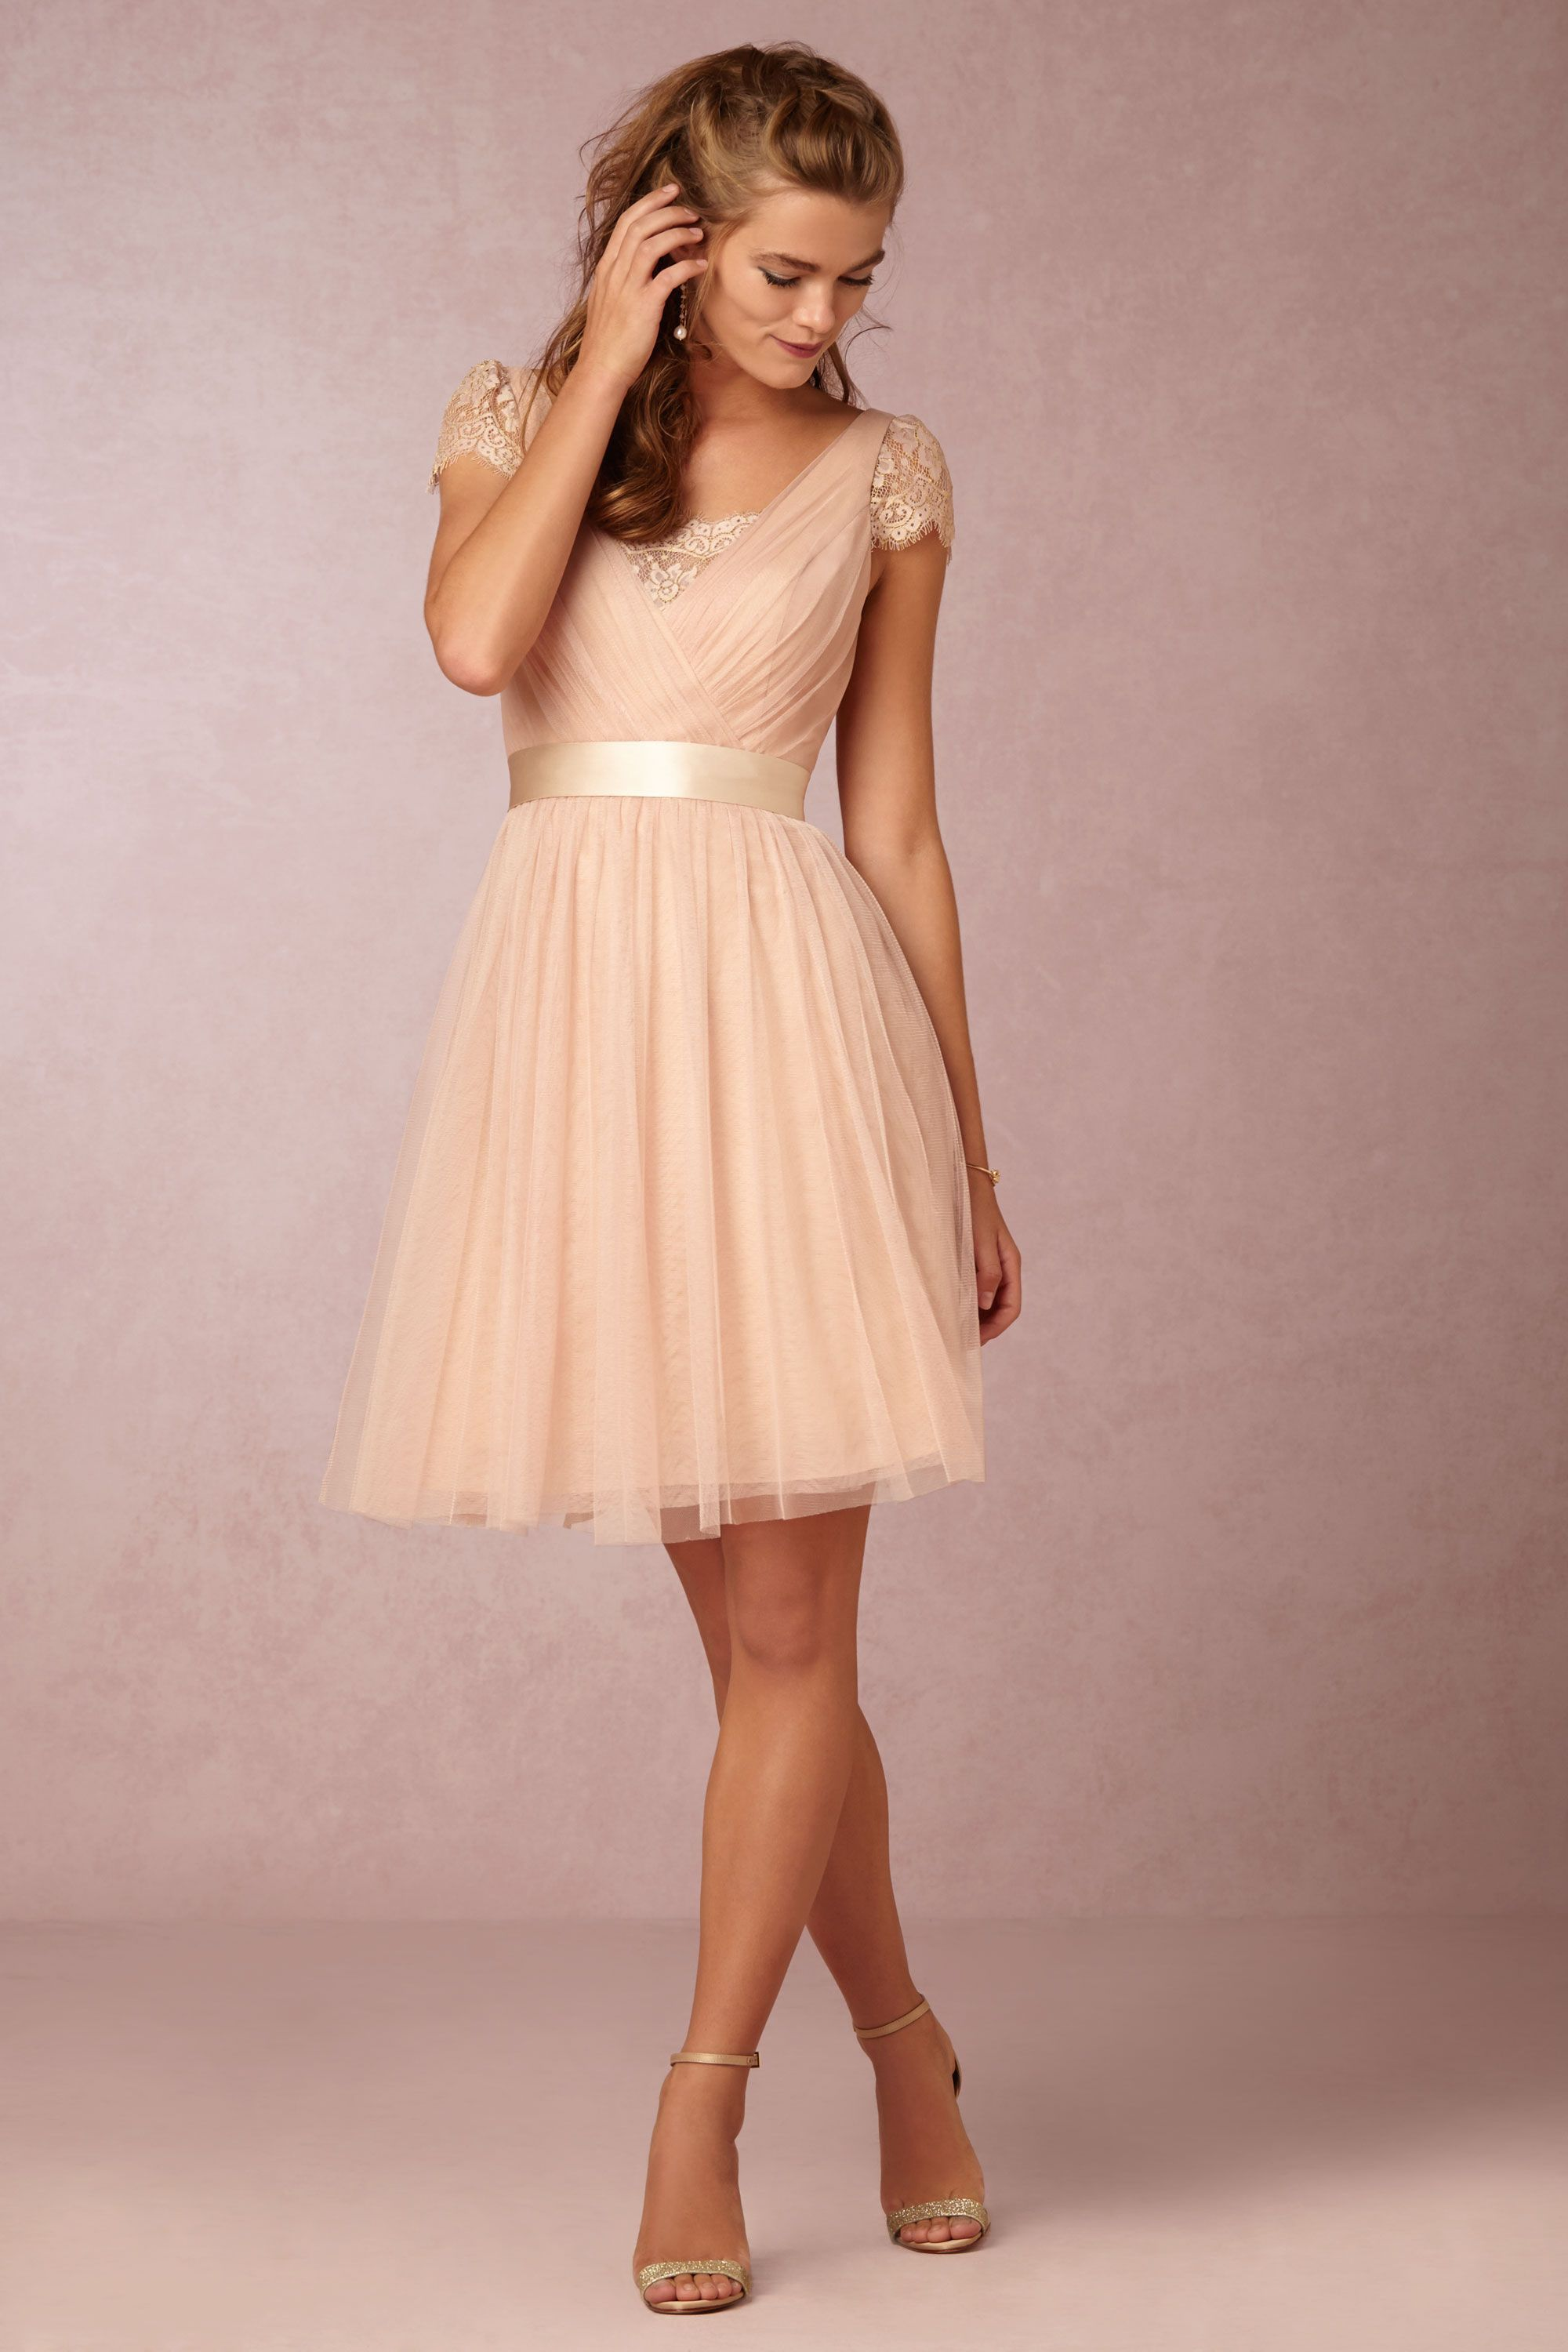 FYI - I ordered this dress for Emma last night from BHLDN. This won ...